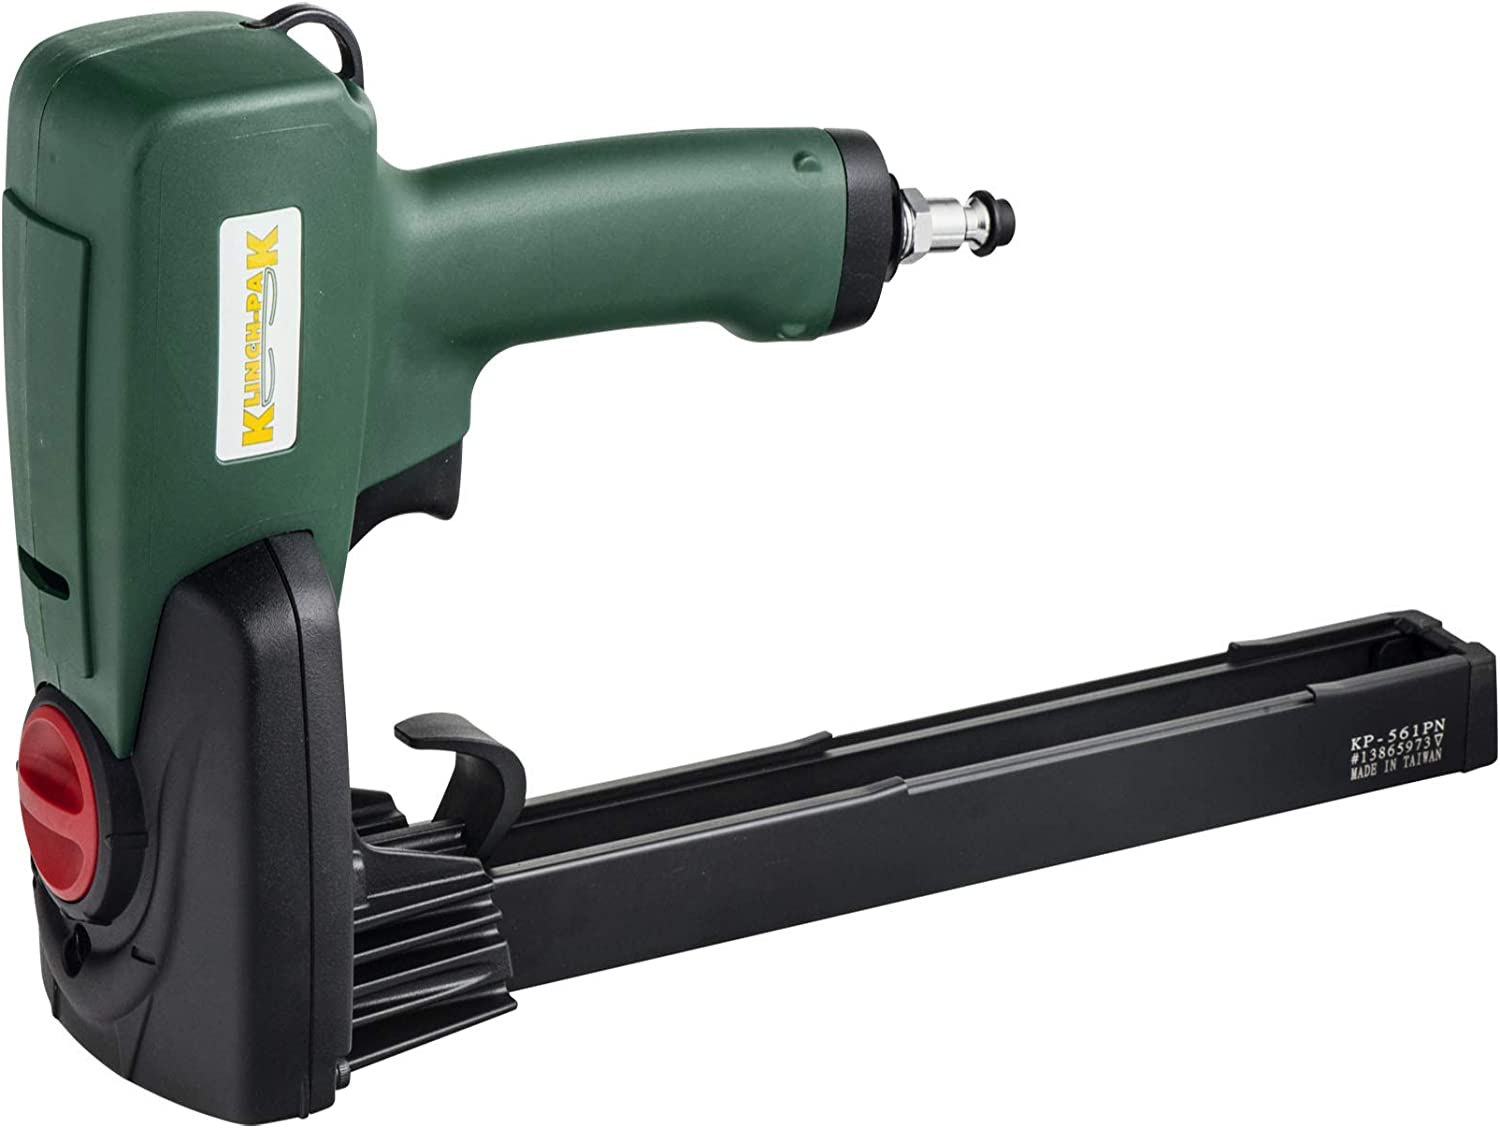 Klinch Pak KP-560PN Pneumatic Carton Closing Stapler for JK560 or A Series 1-3//8-Inch Crown Staples with 5//8-Inch or 3//4-Inch Leg SIM to JK A560PN H-3064